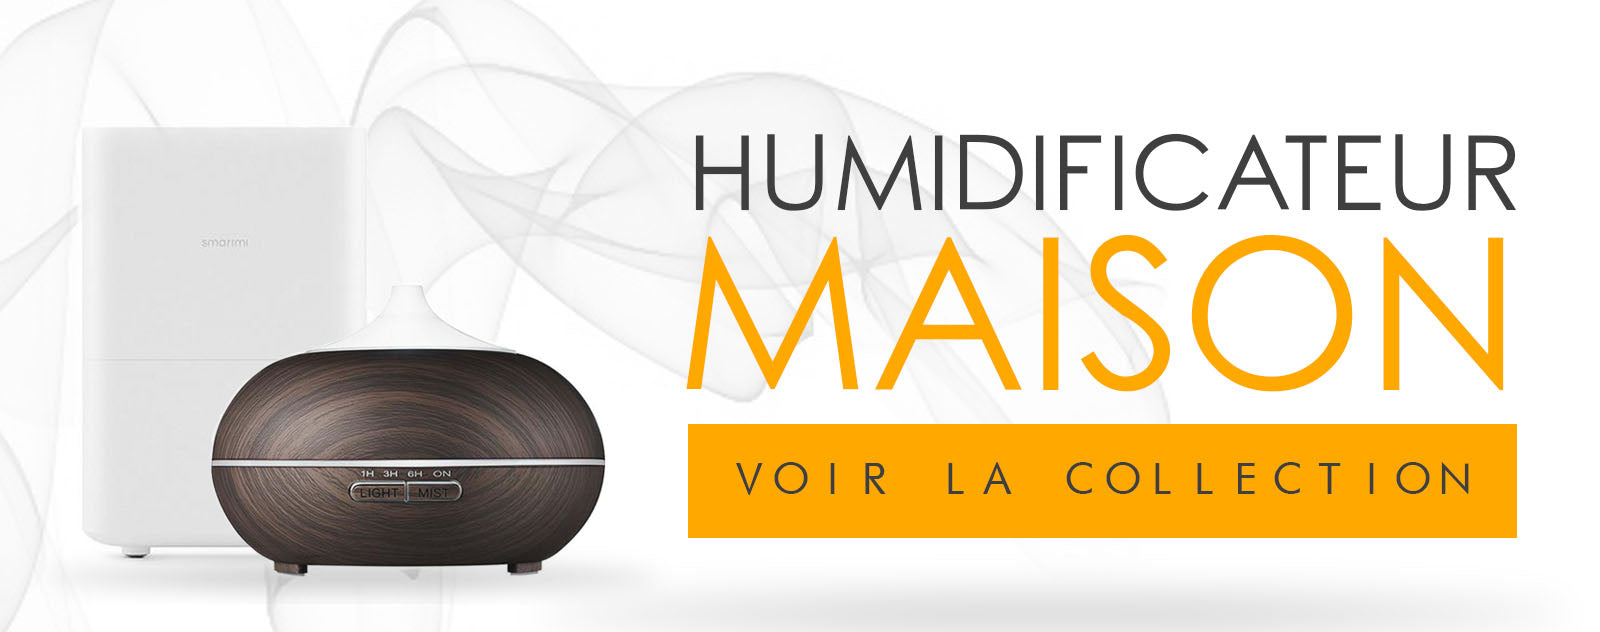 Humidificateur d'air Maison